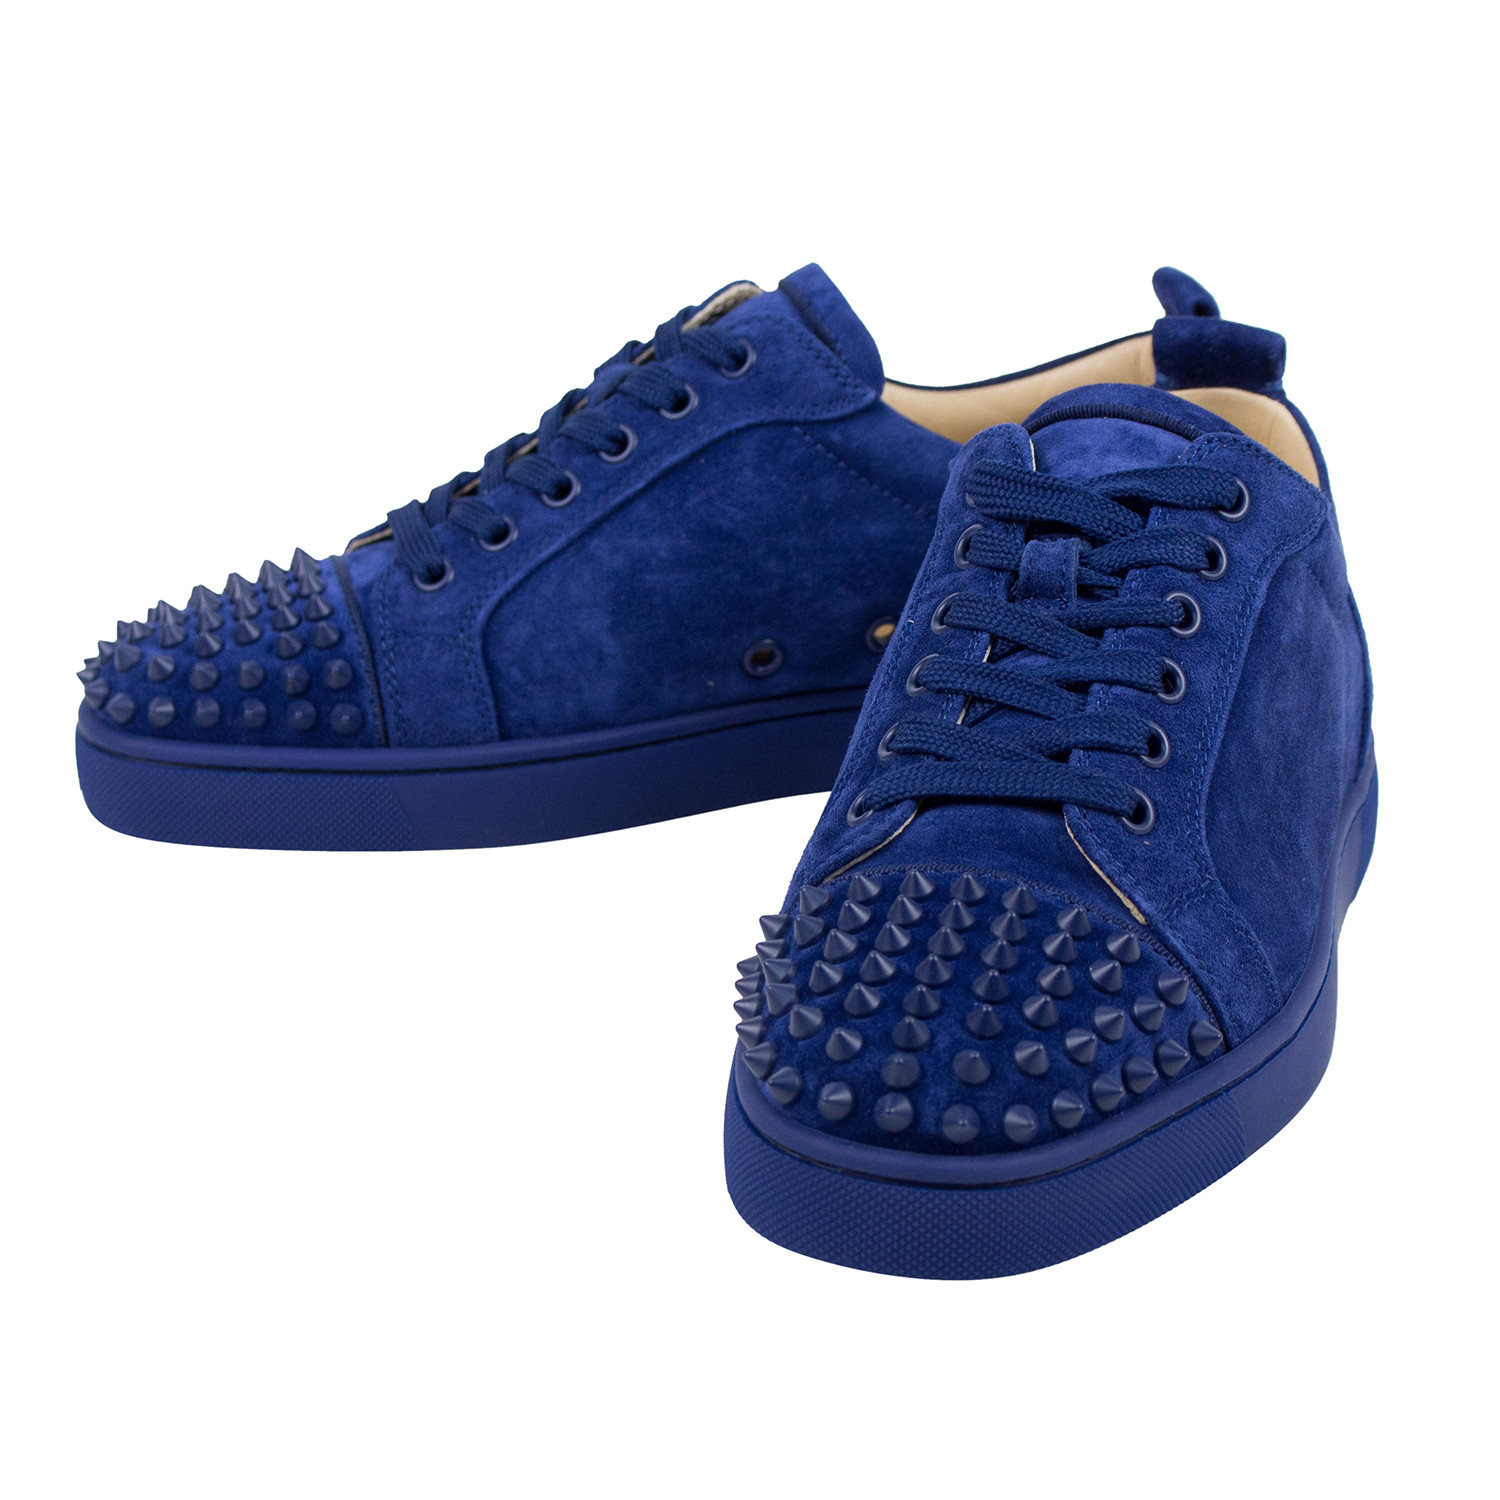 new style 506dc 83106 Louis Junior Suede Low-Top Spike Sneakers // Blue (US: 6 ...